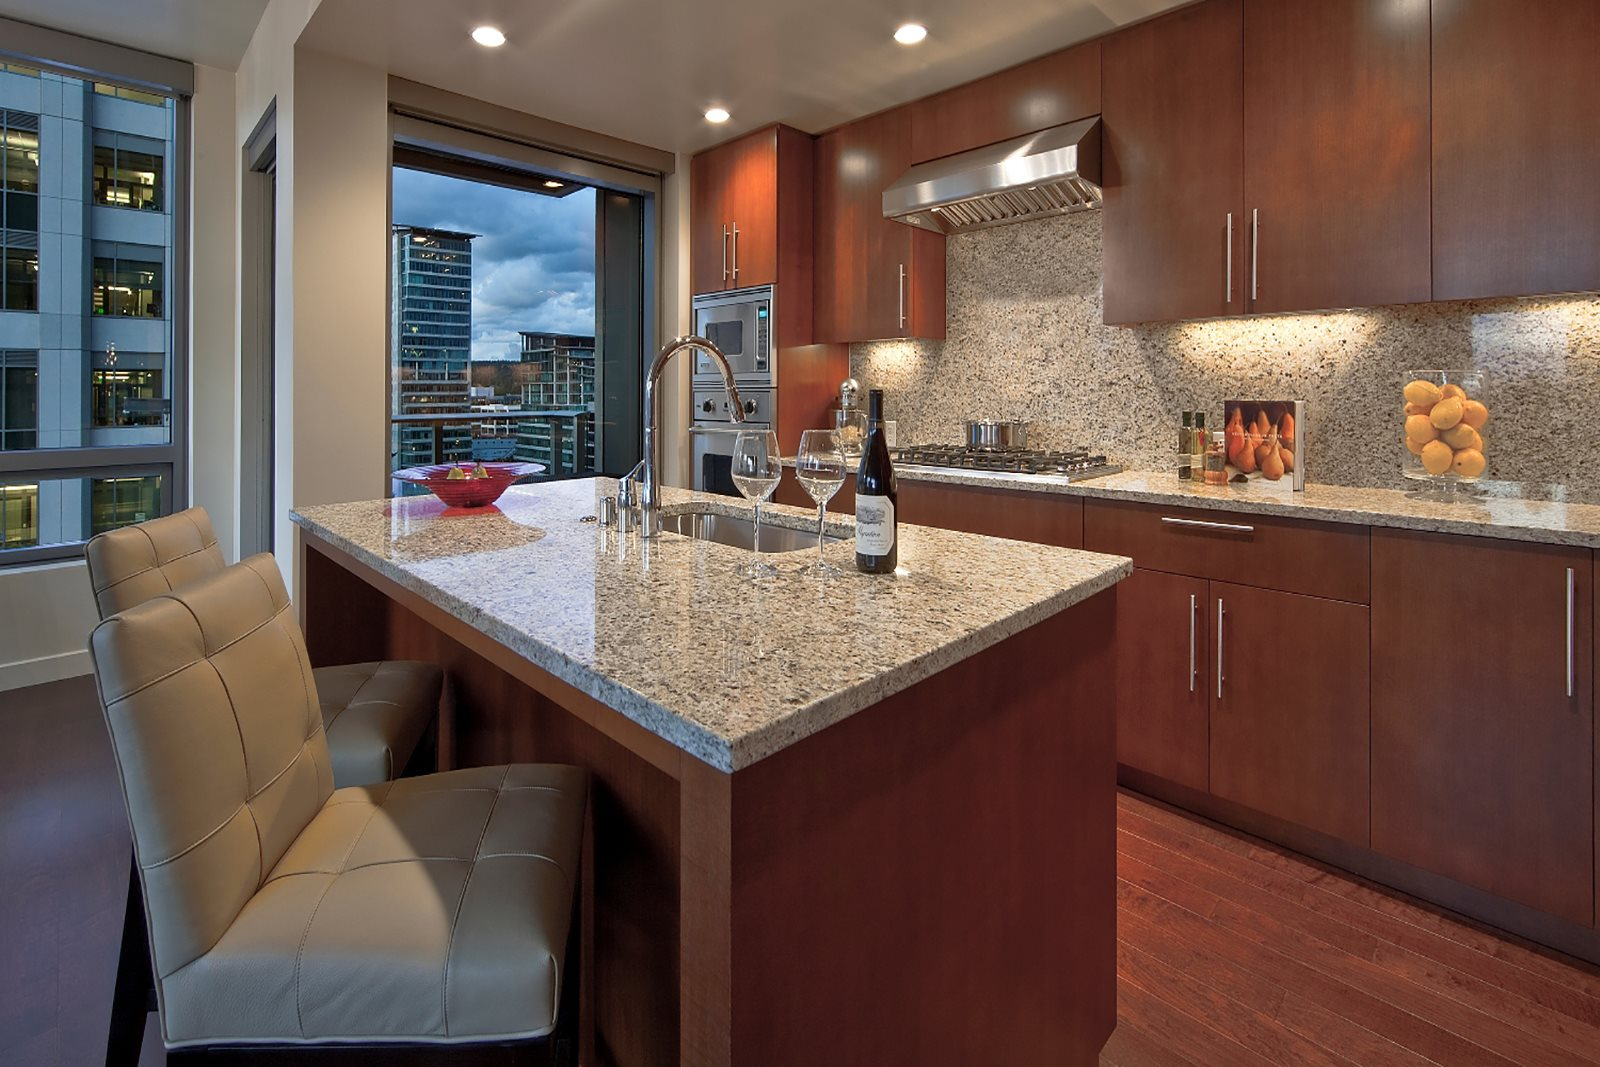 Granite Countertops at The Bravern in Bellevue, WA